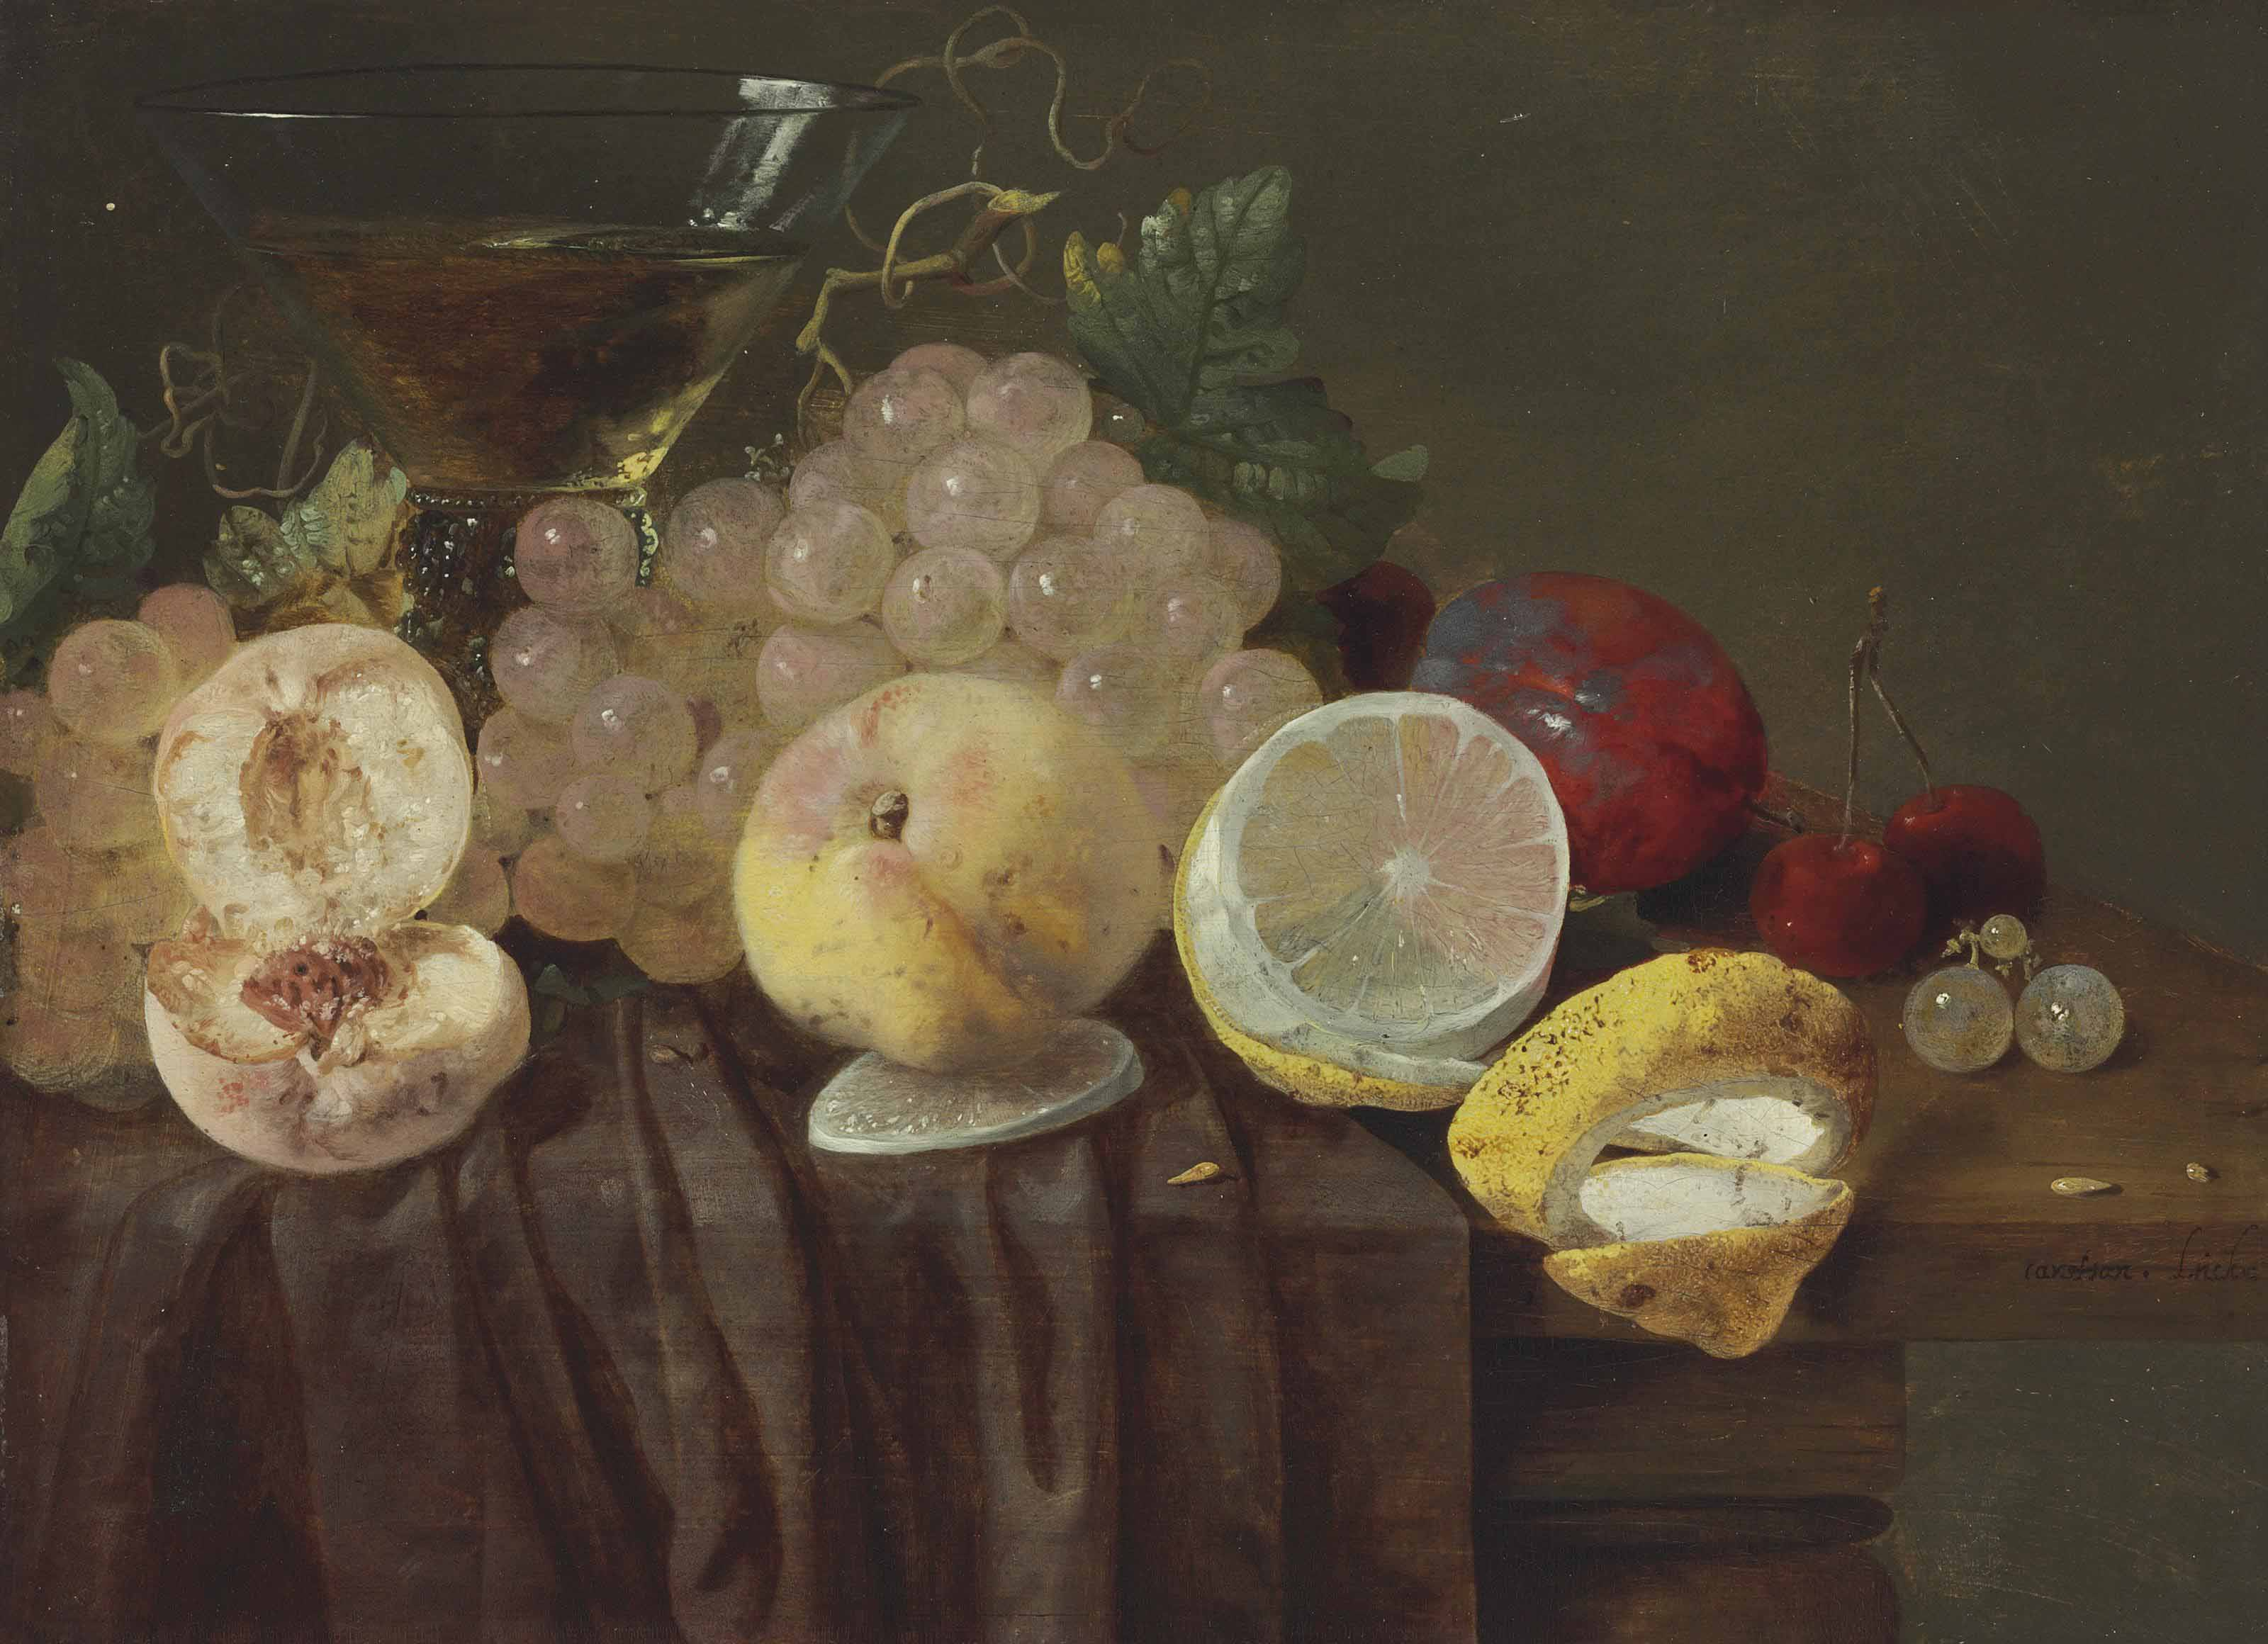 https://www.christies.com/img/LotImages/2015/NYR/2015_NYR_03709_0273_000(carstian_luyckx_grapes_peaches_a_lemon_plums_cherries_and_a_roemer_on).jpg